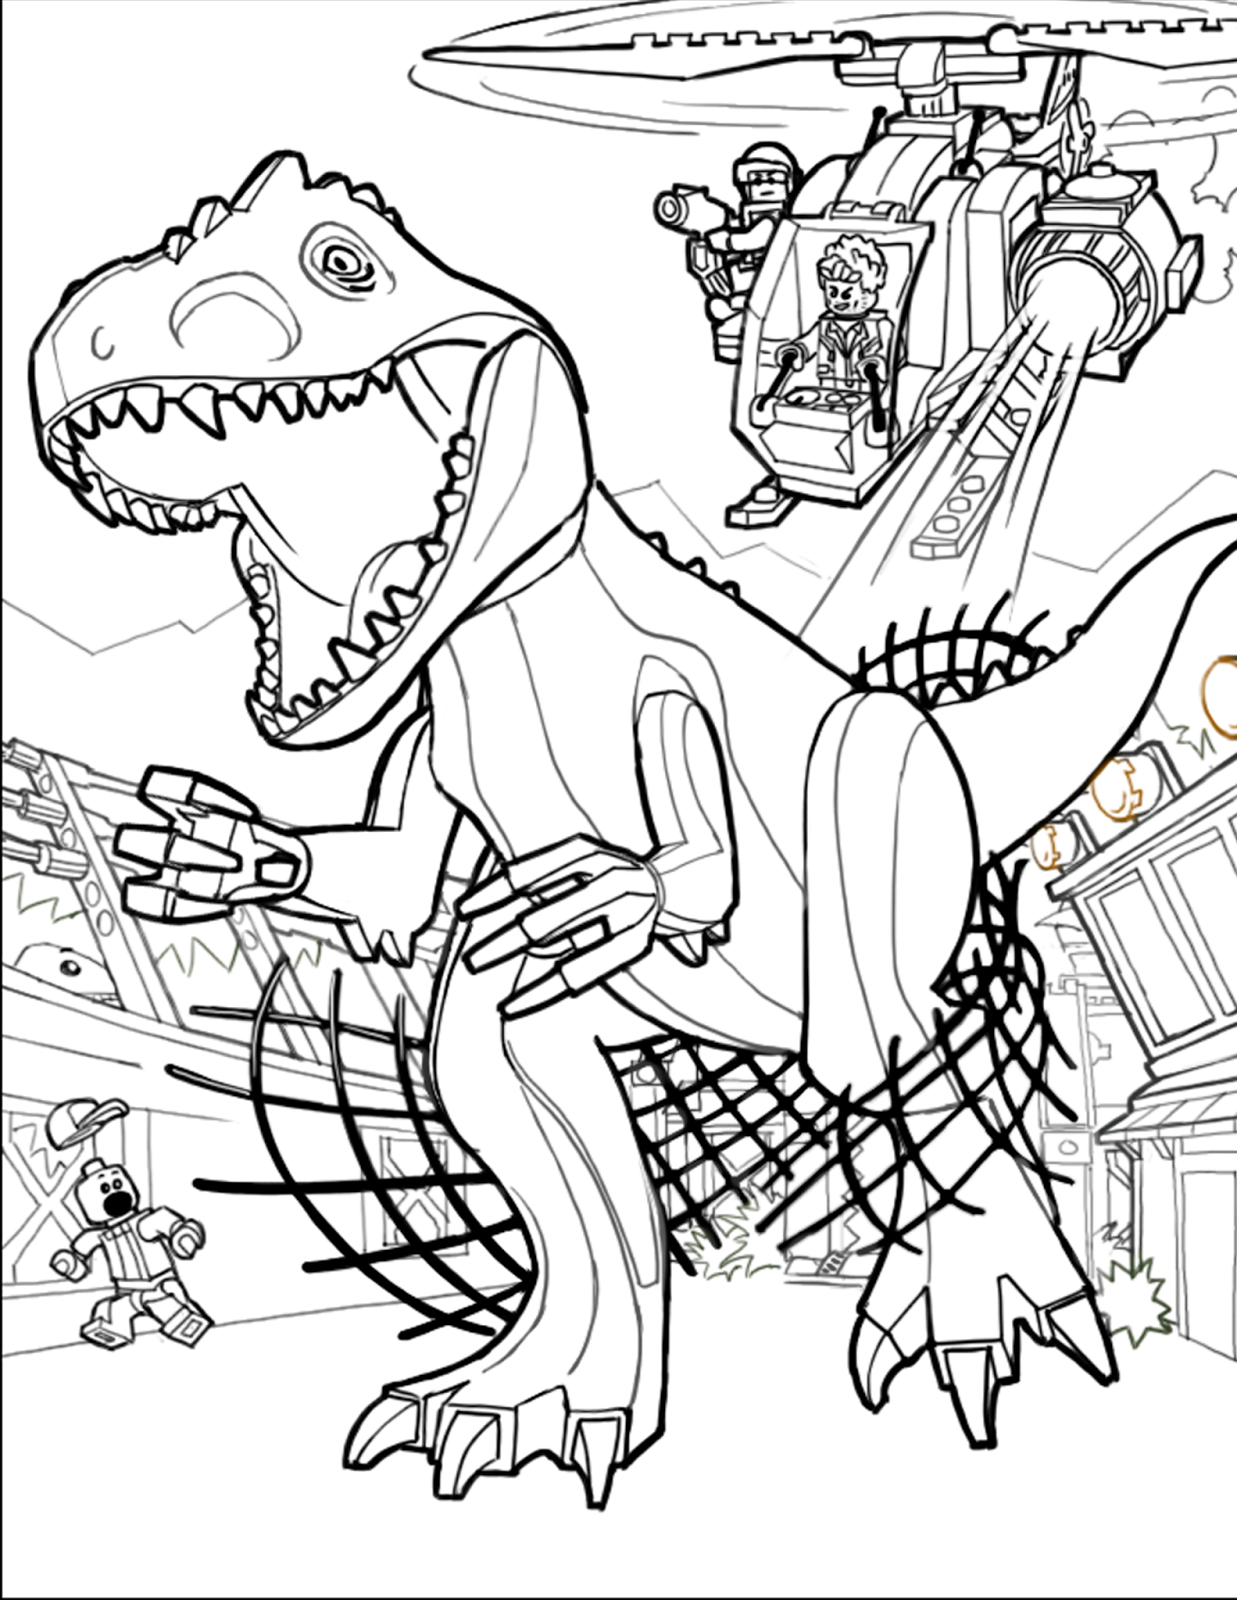 jurassic world echo coloring pages | FUN & LEARN : Free worksheets for kid: Jurassic World Free ...